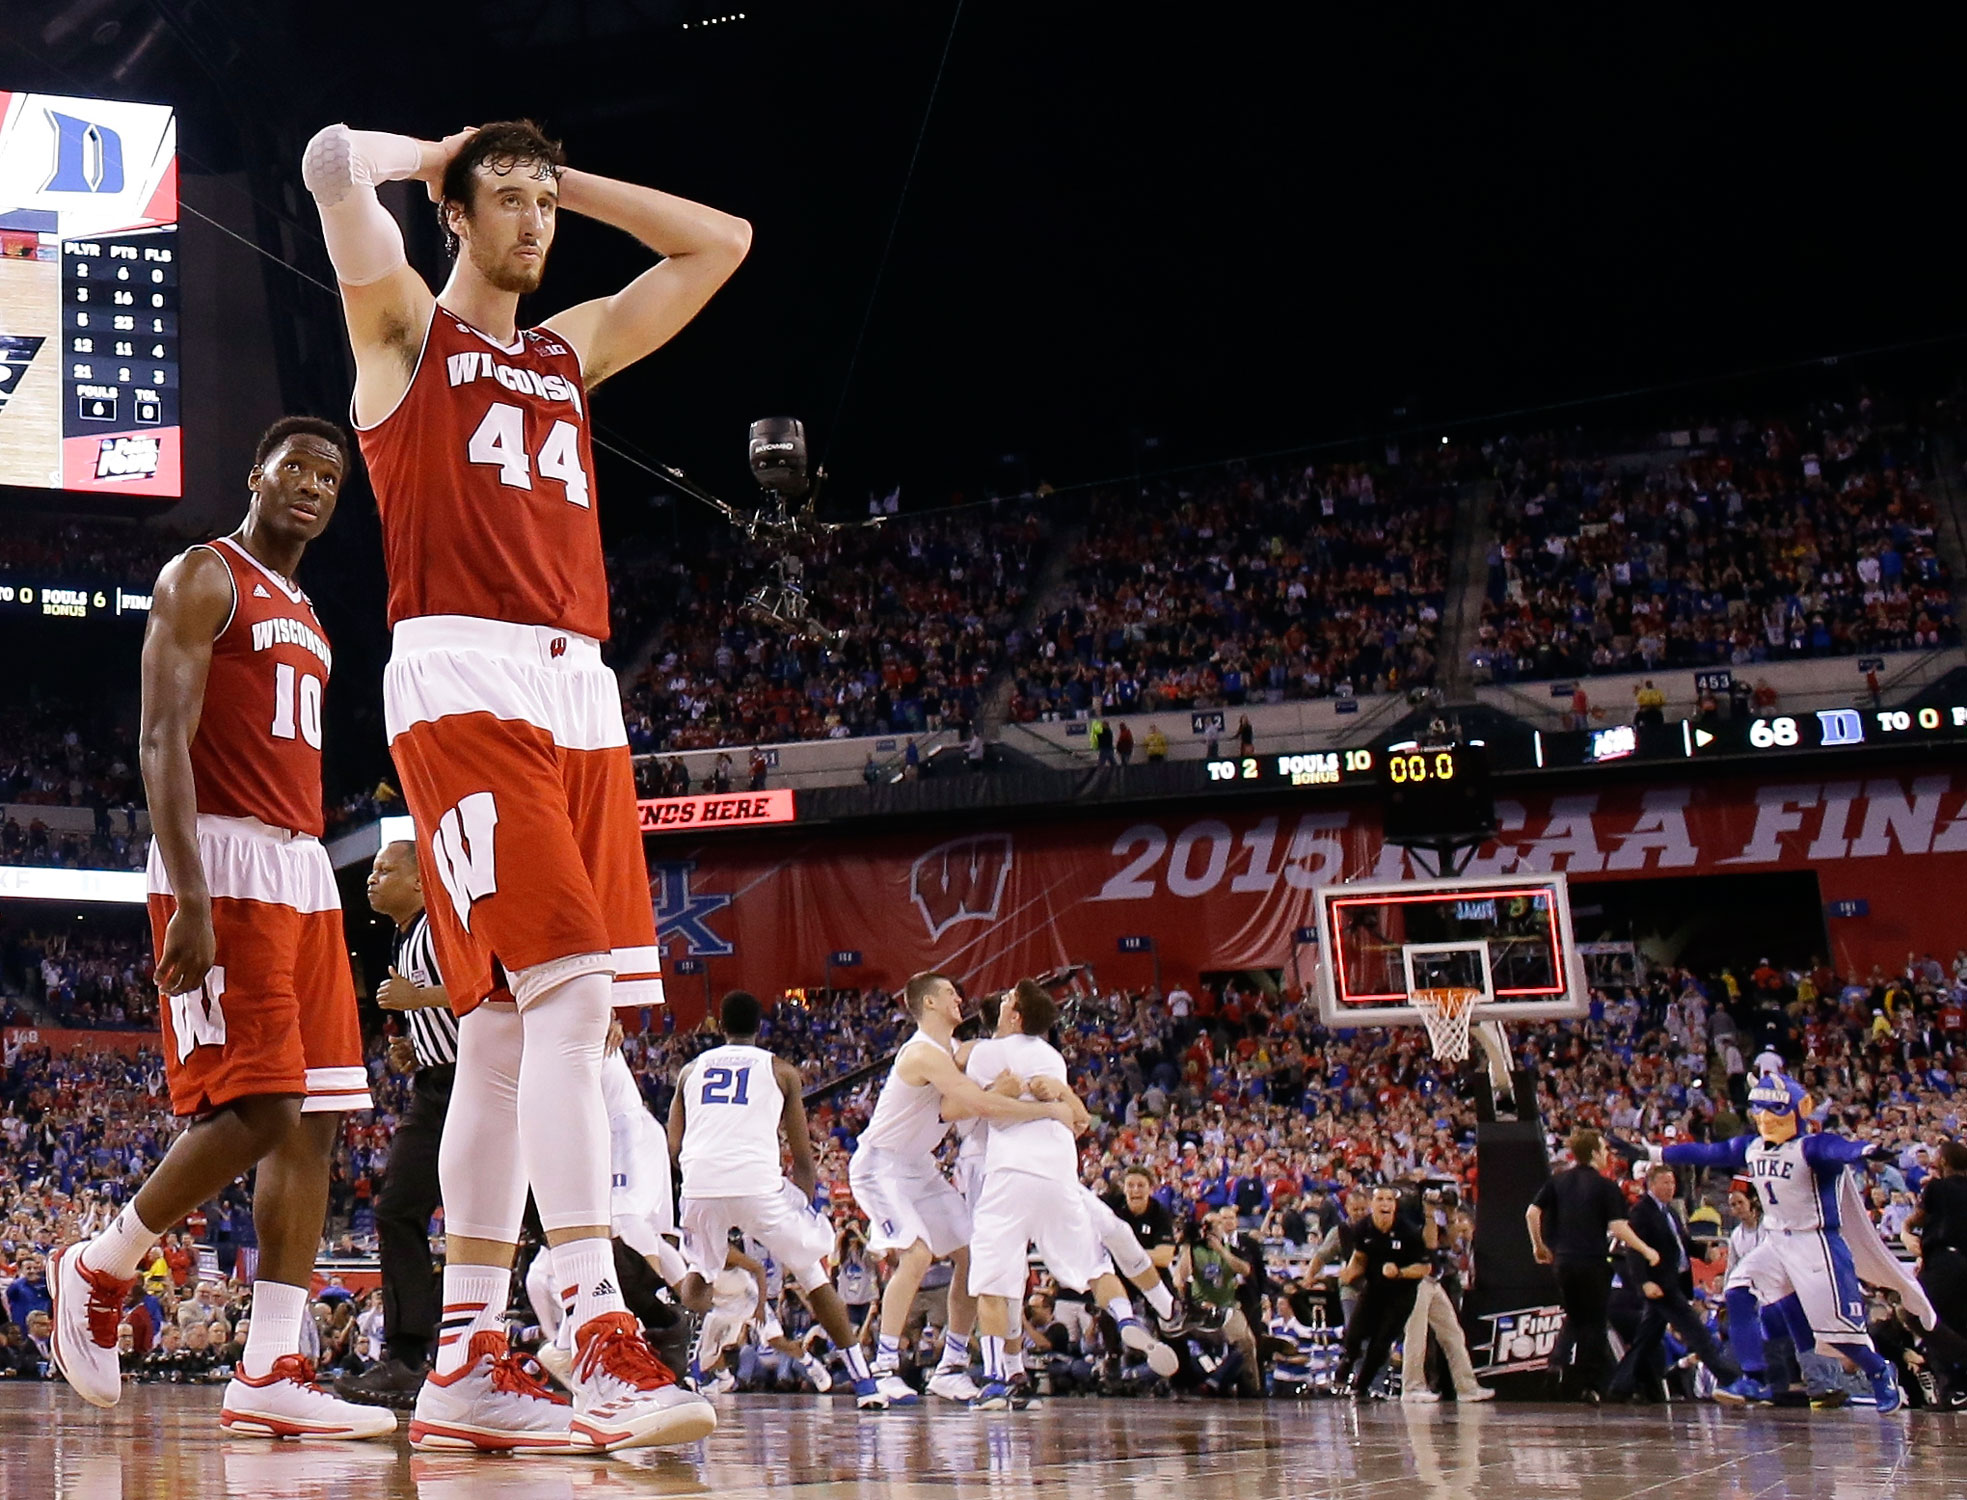 Column: College basketball's 'One Shining Moment' came two days early